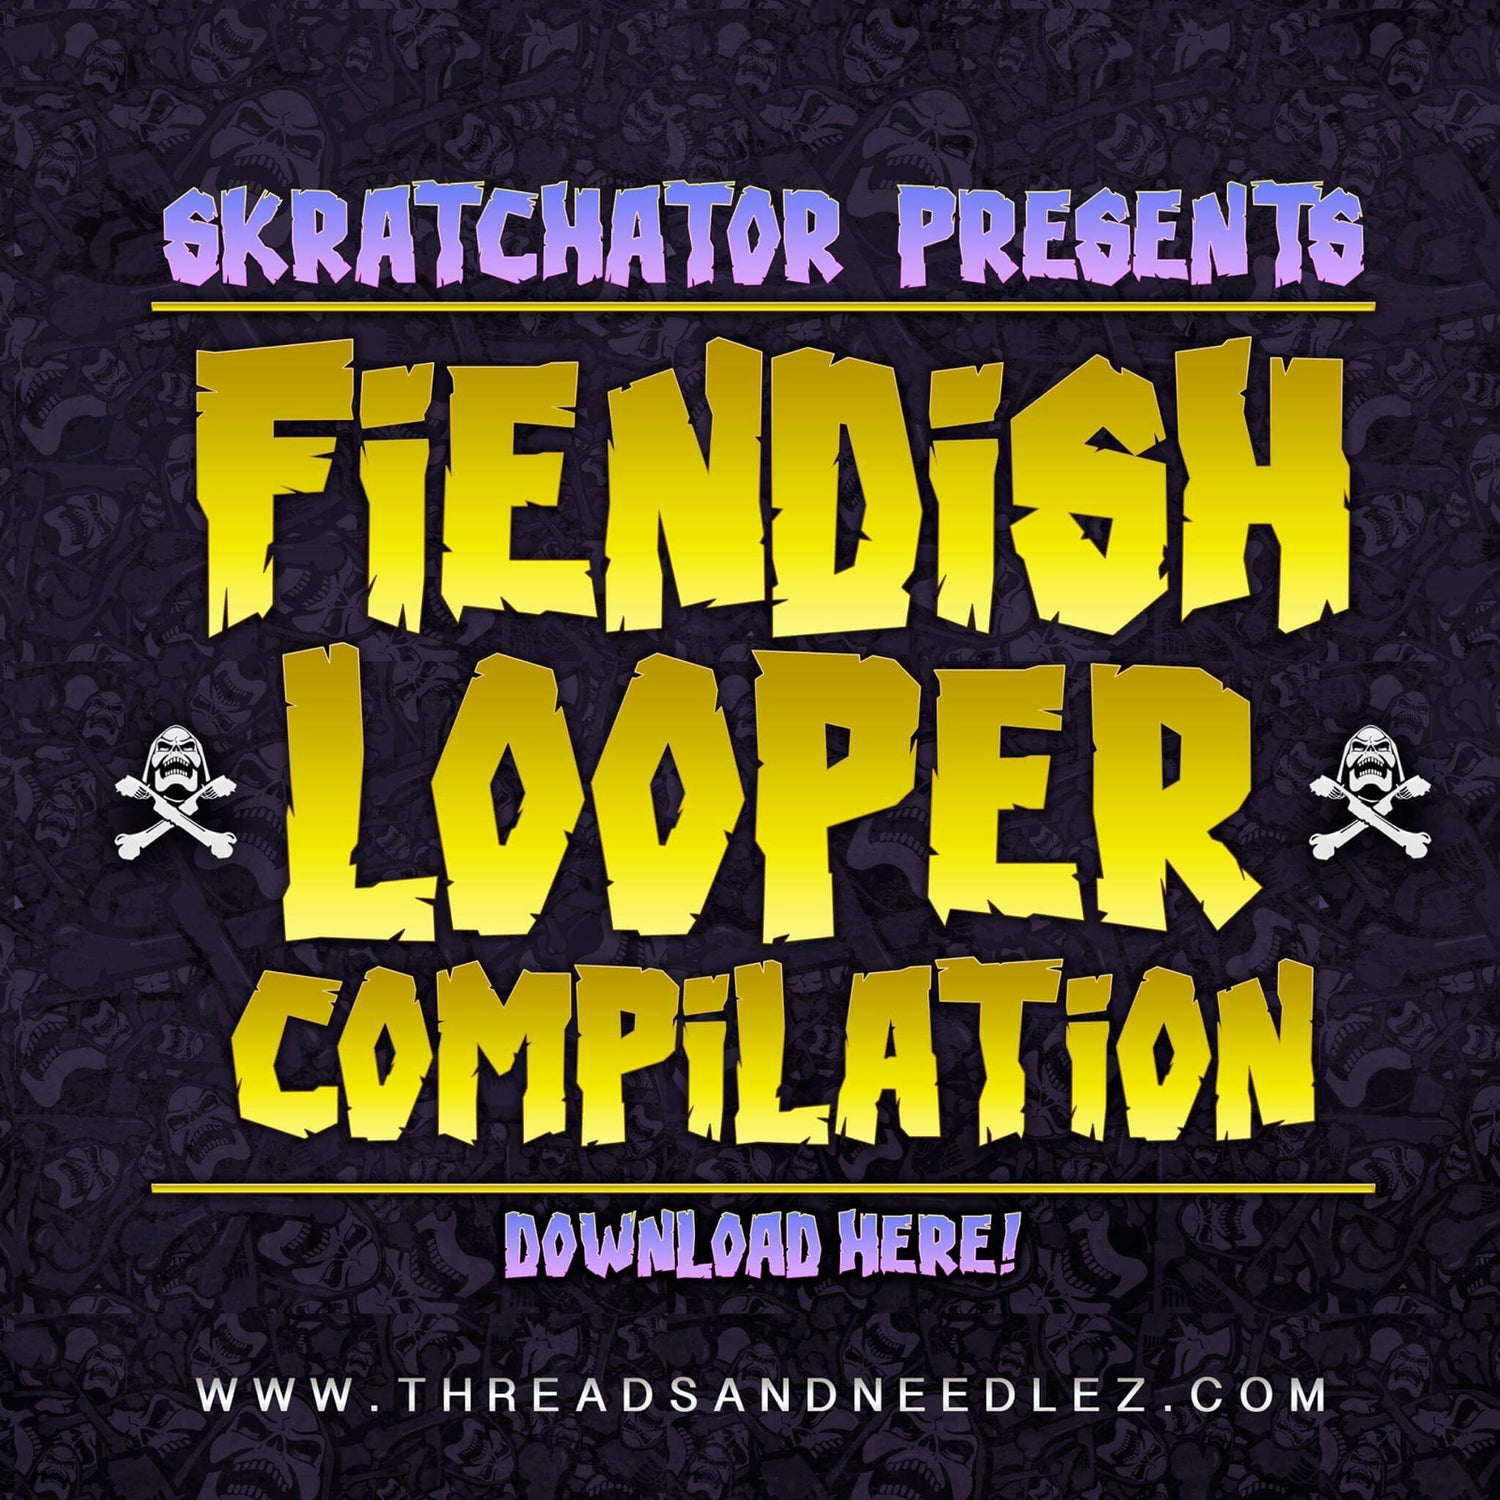 Image of Fiendish looper compilation